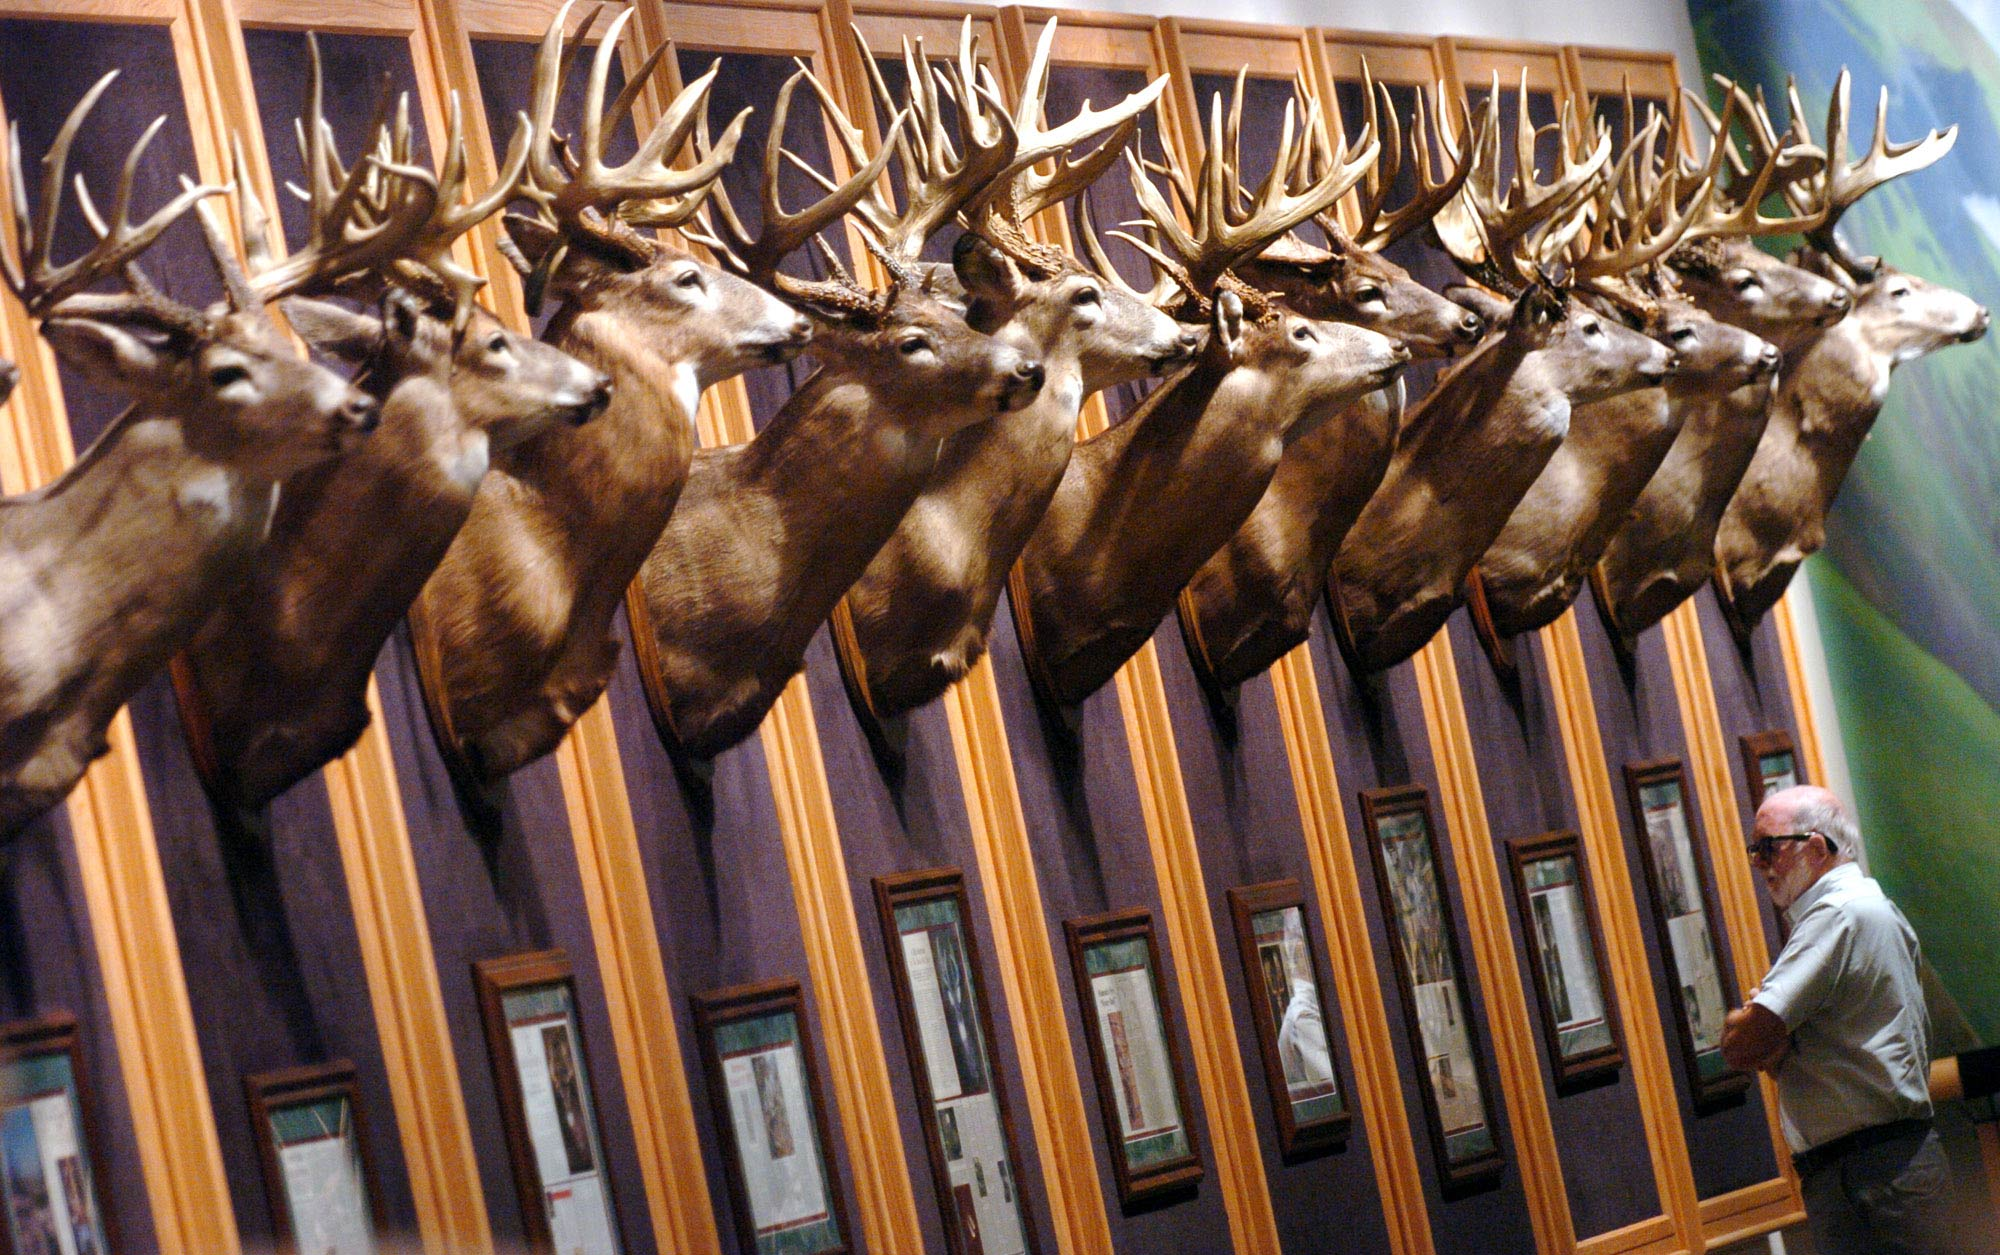 A customer looks over the row of mounted deer heads in the Whitetail Museum inside a Cabela's store in Wheeling, W.Va.